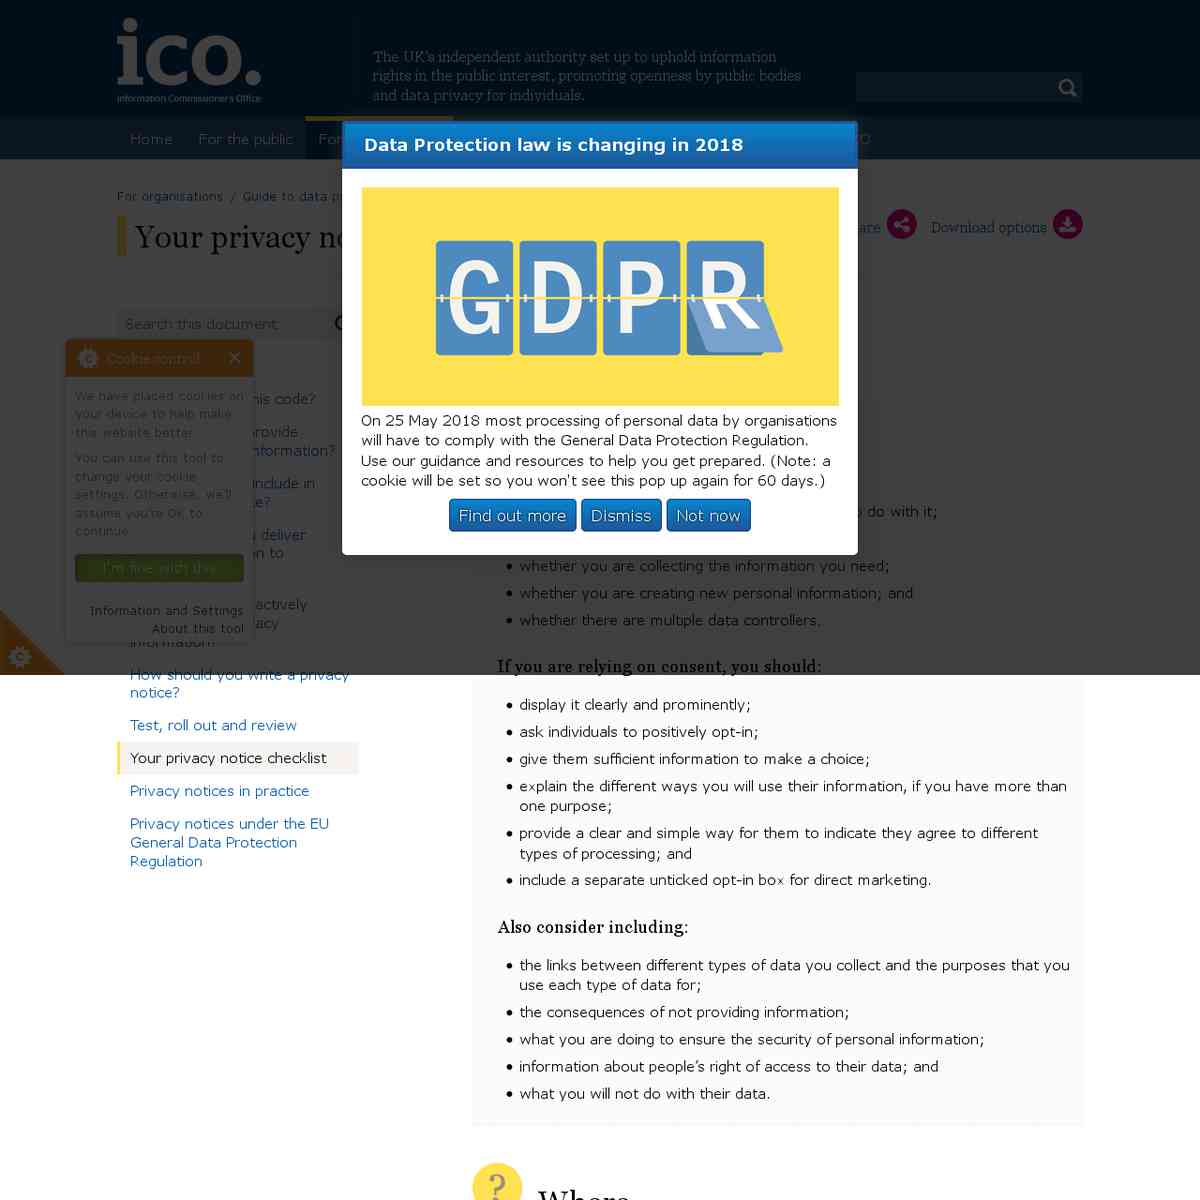 ico.org.uk/for-organisations/guide-to-data-protection/privacy-notices-transparency-and-control/your…